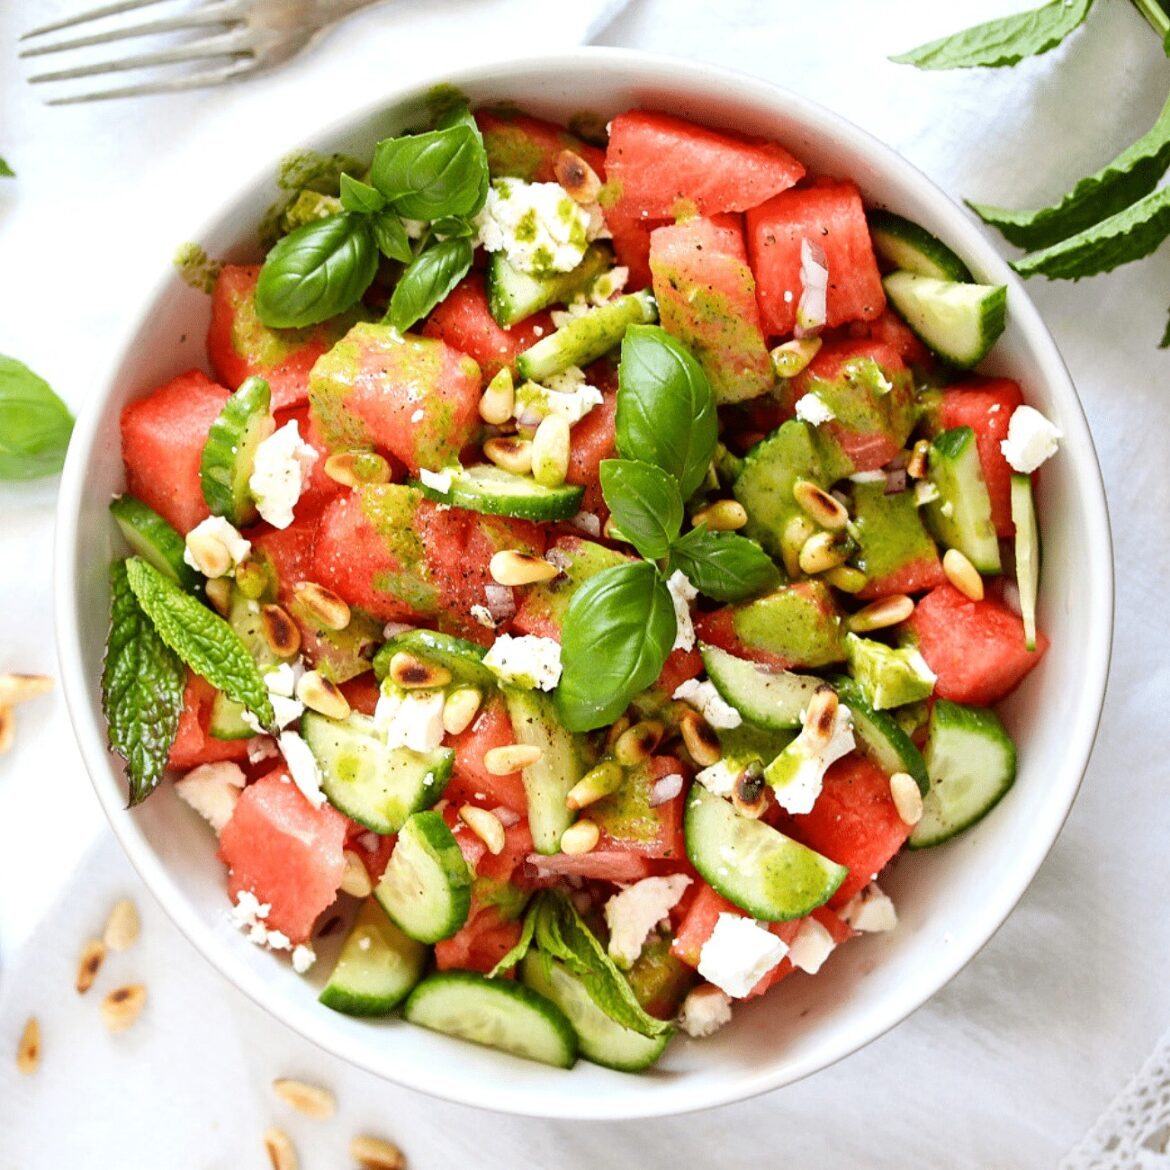 watermelon feta balsamic salad in a white bowl